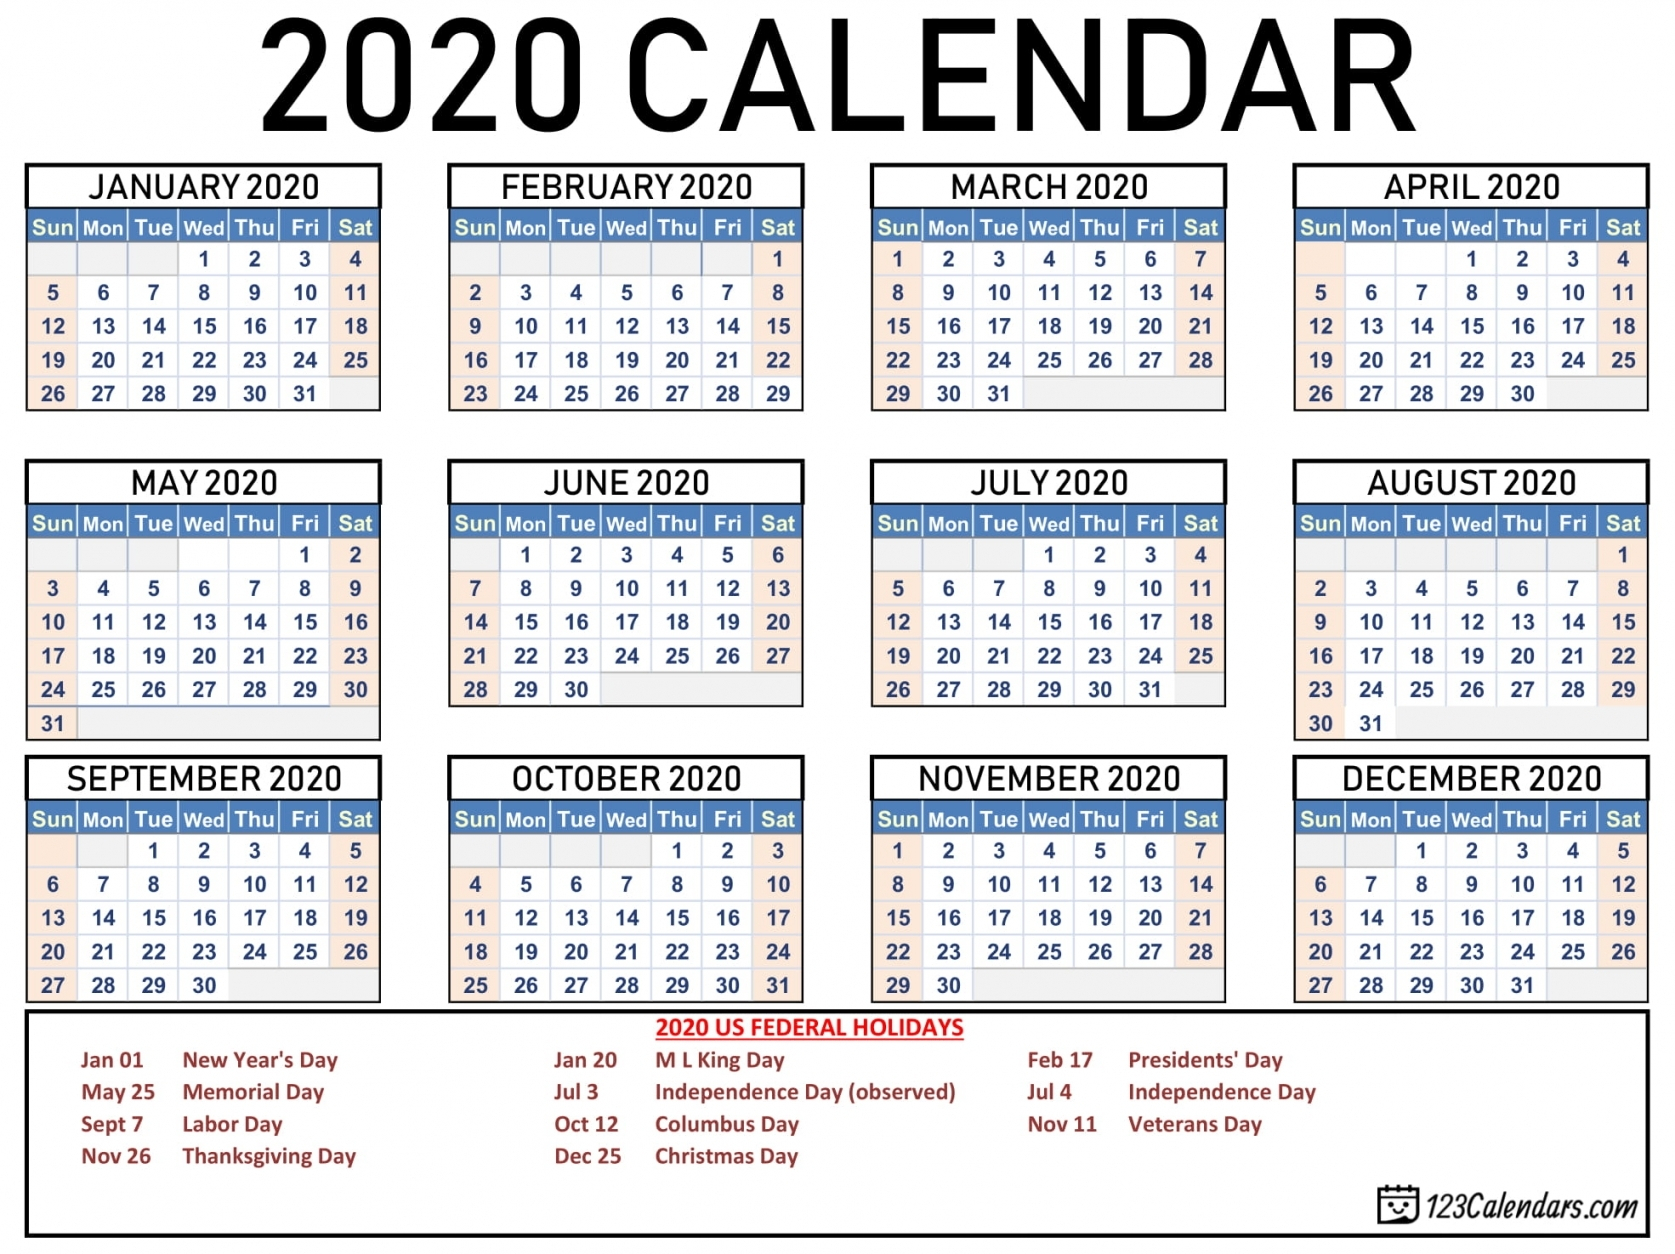 Calendar 2020 Printable With Holidays | Free Letter Templates